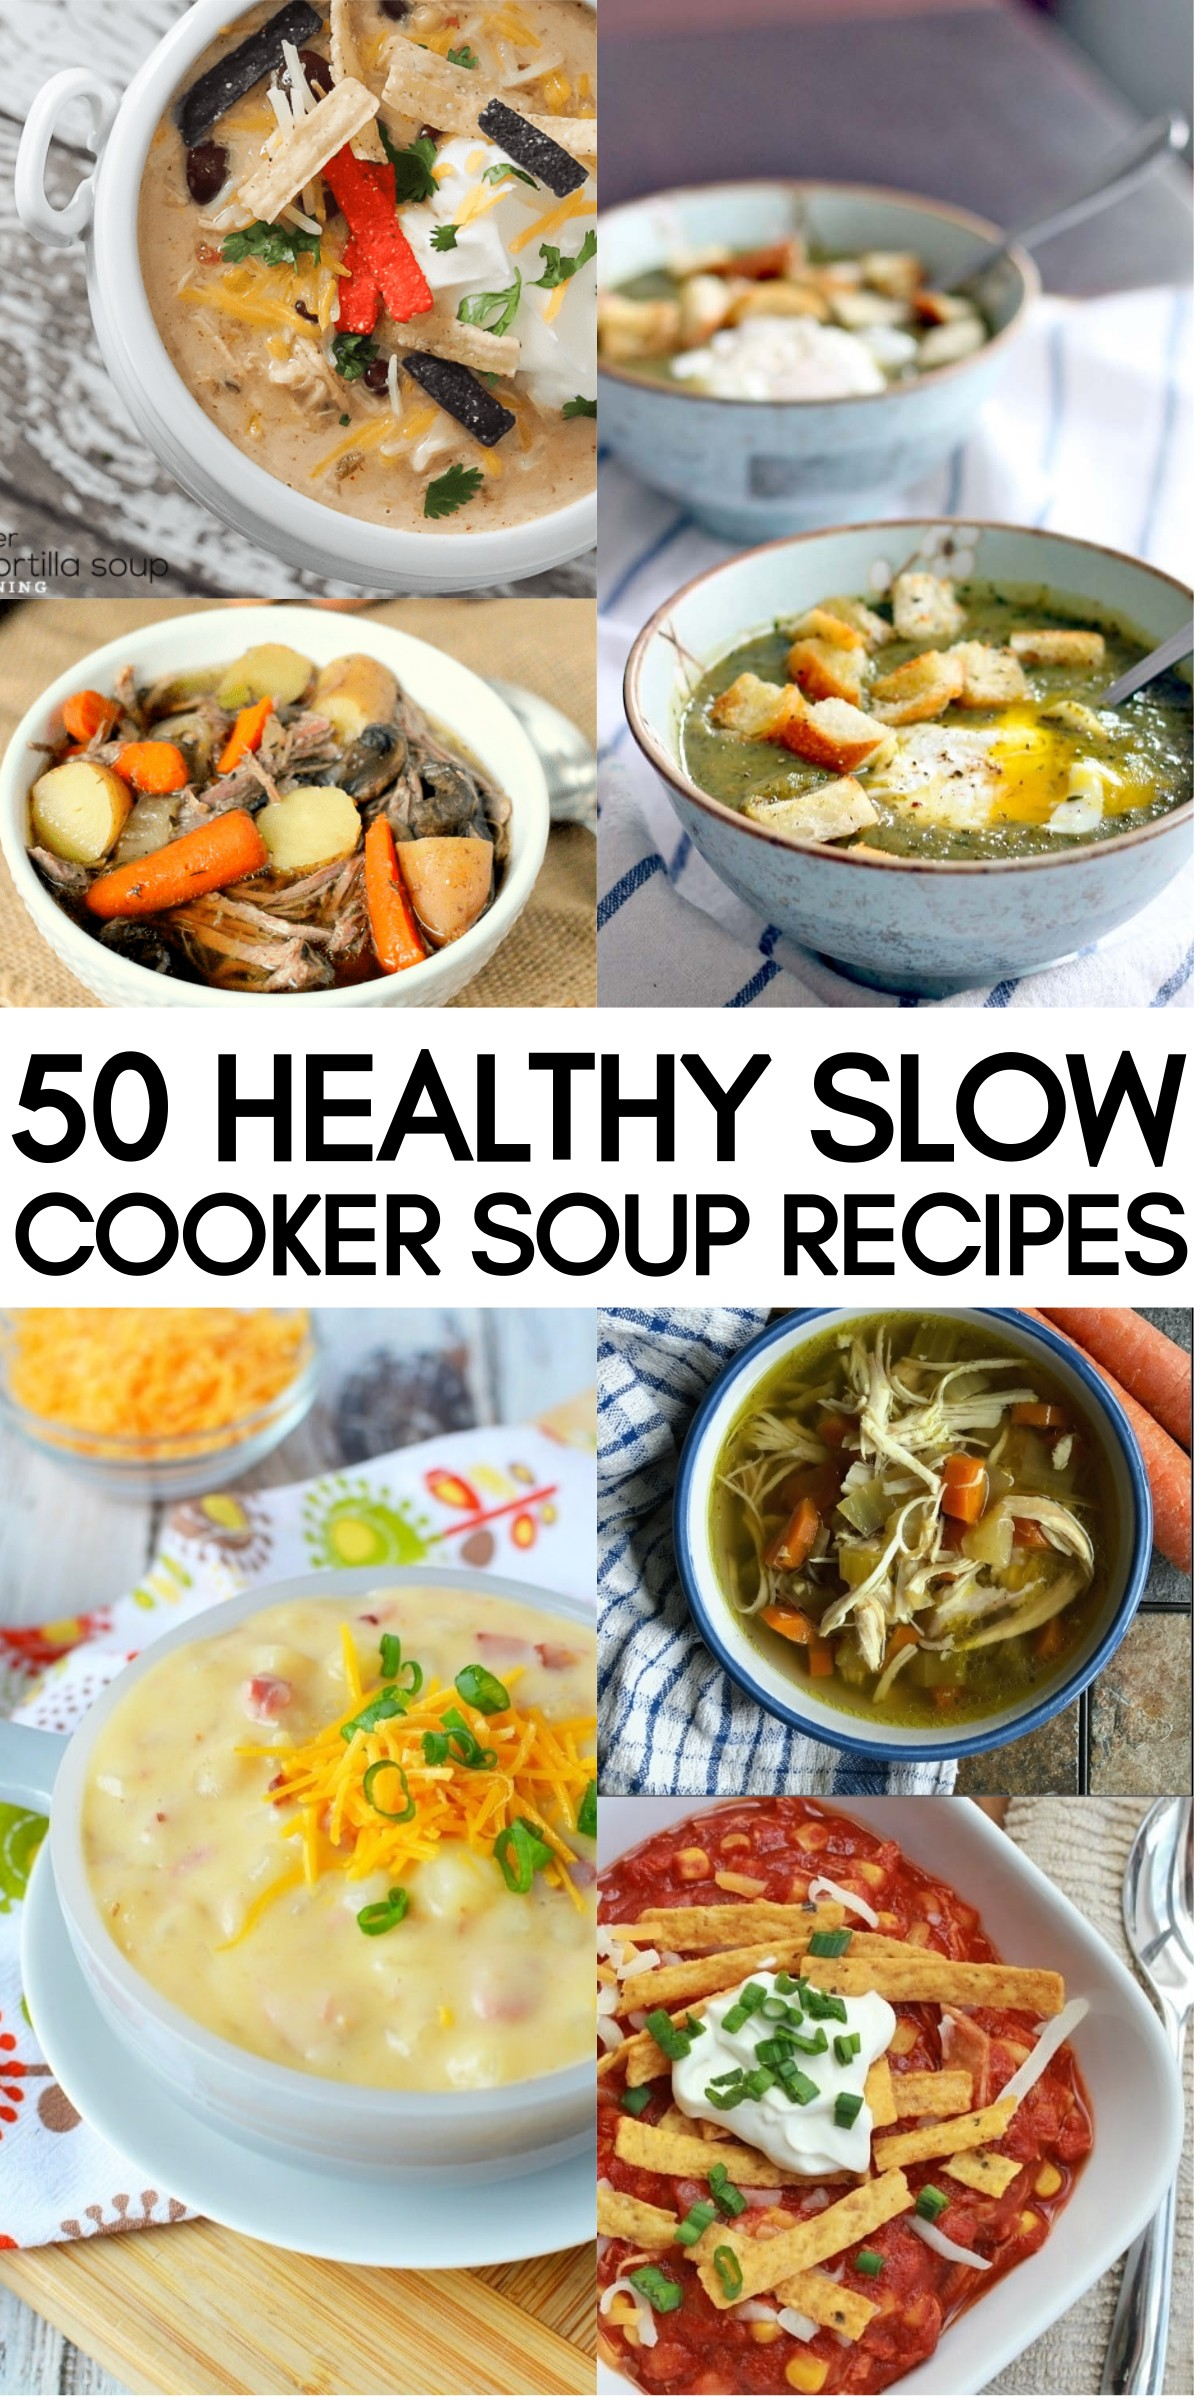 50 Healthy Slow Cooker Soup Recipes To Warm You Up This Season | crock pot soup recipes | slow cooker soups and stews | crock pot soup easy | soup recipes slow cooker | honeyandlime.co